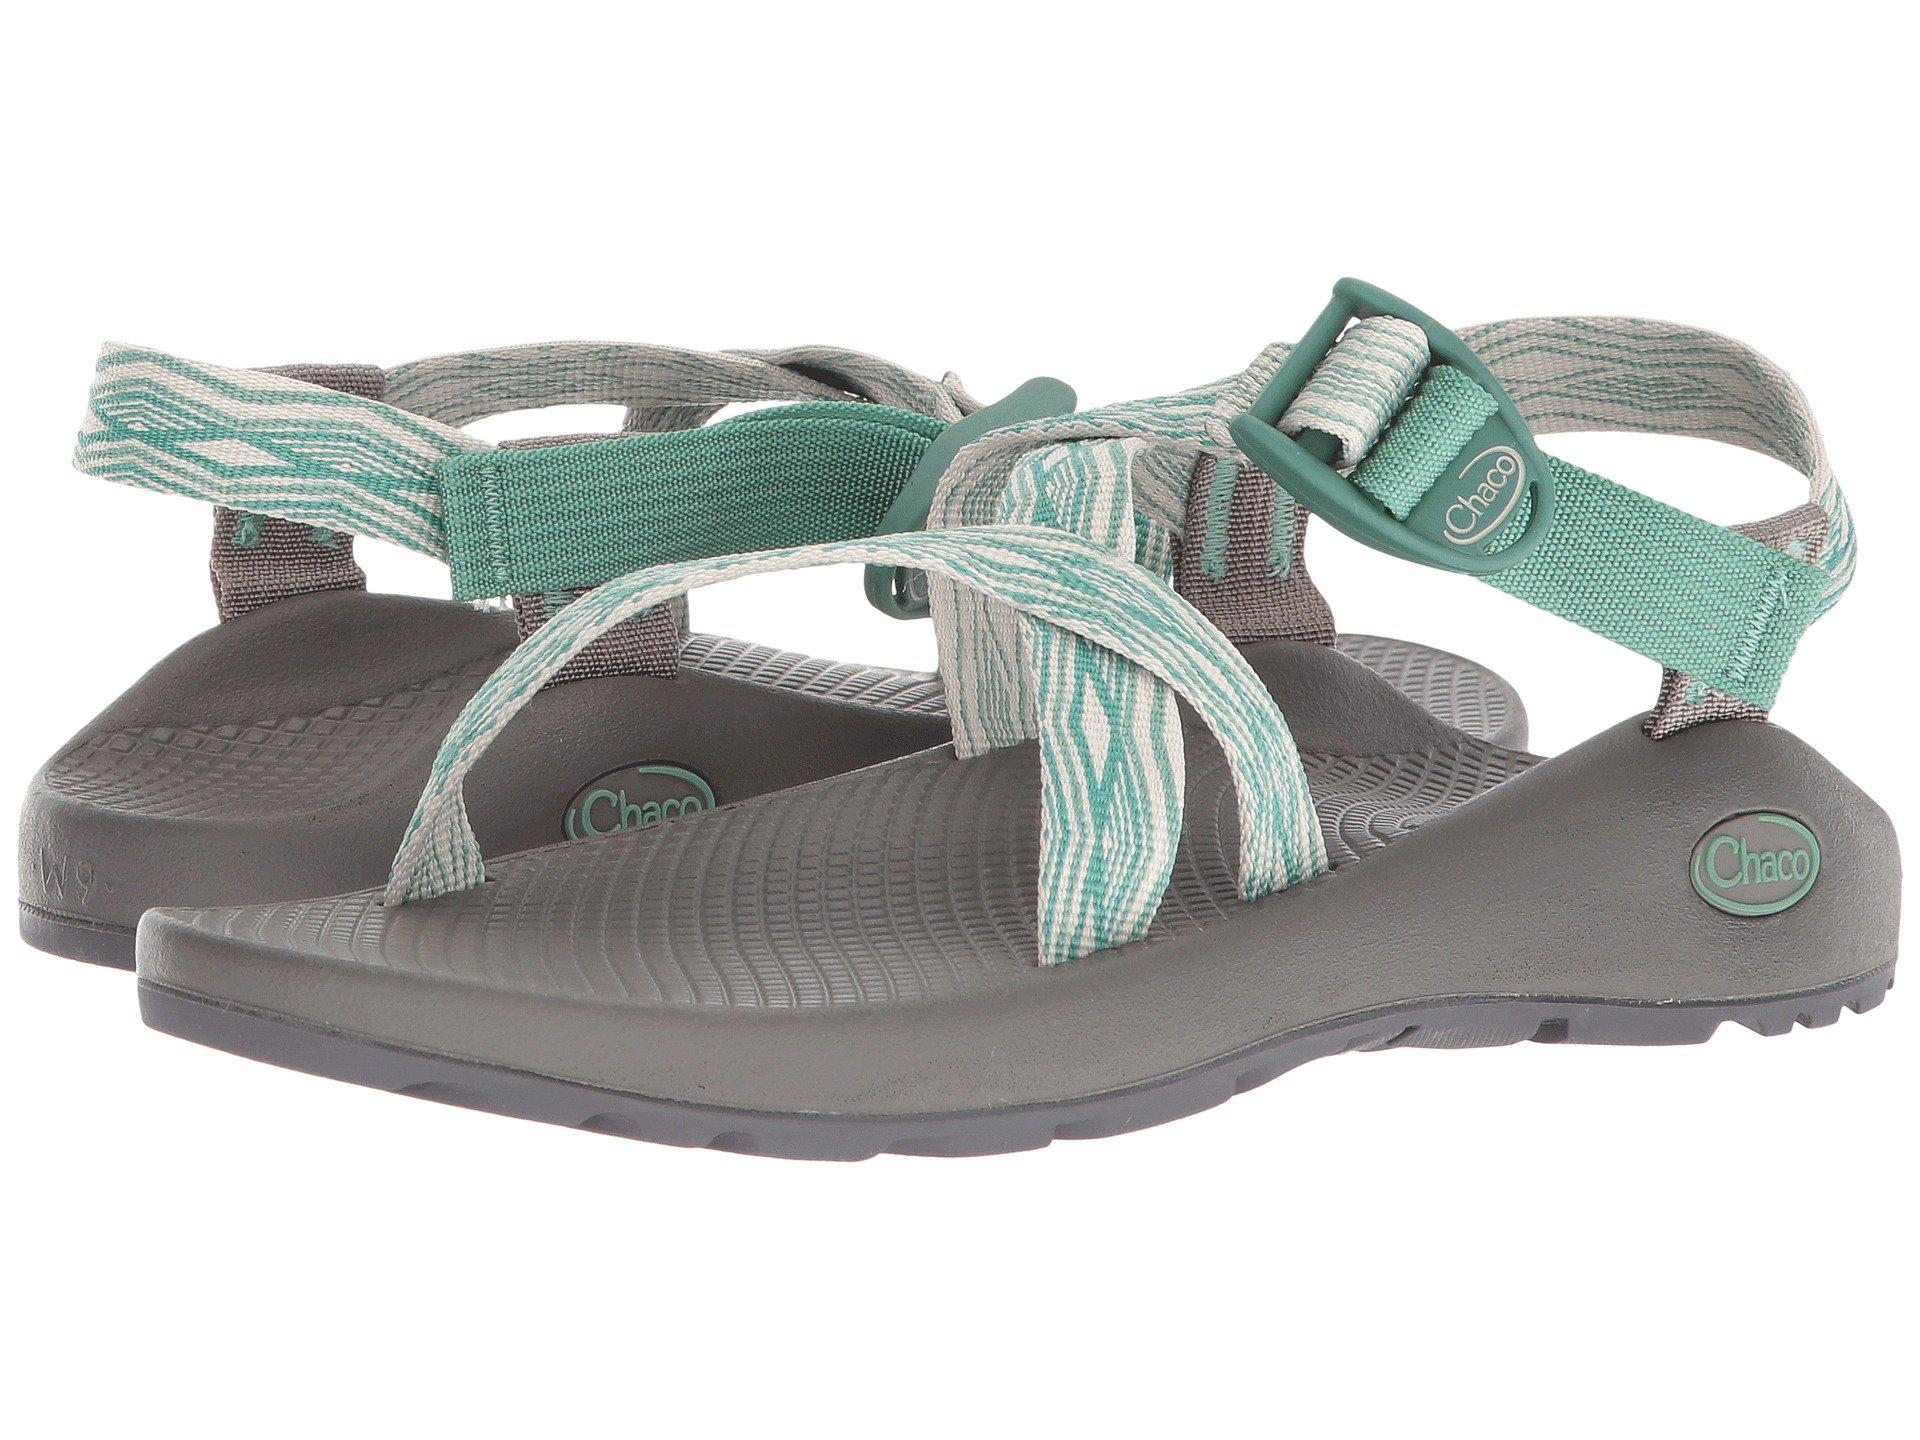 f4a59351cd10 Lyst - Chaco Z 1(r) Classic (prism Mint) Women s Sandals